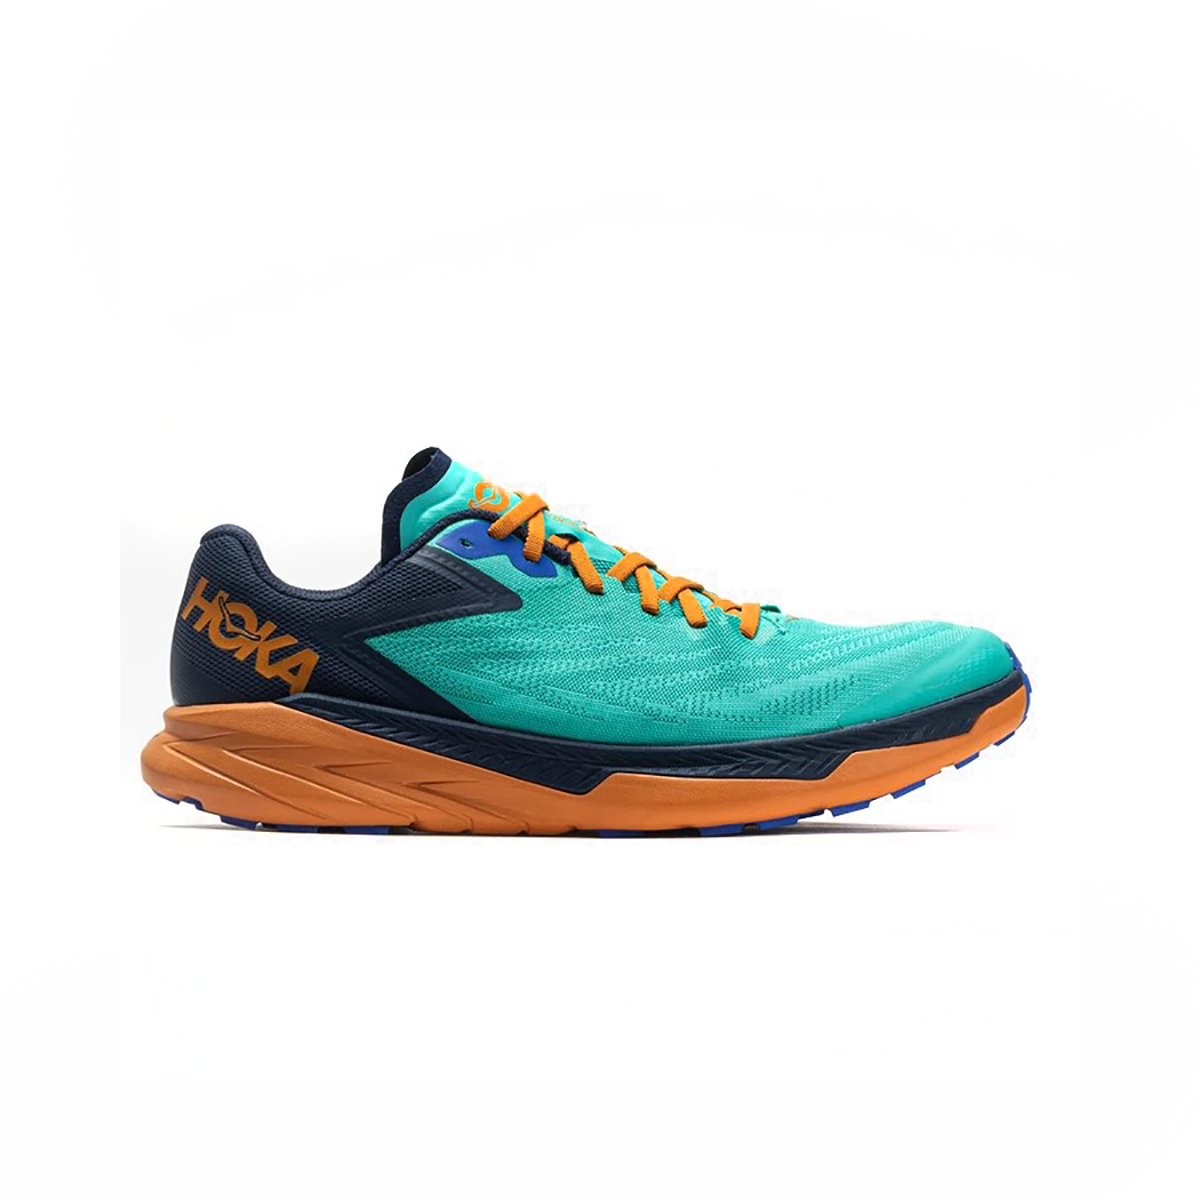 Men's Hoka One One Zinal Trail Running Shoe - Color: Atlantis / Outer Space - Size: 7 - Width: Narrow, Atlantis / Outer Space, large, image 1